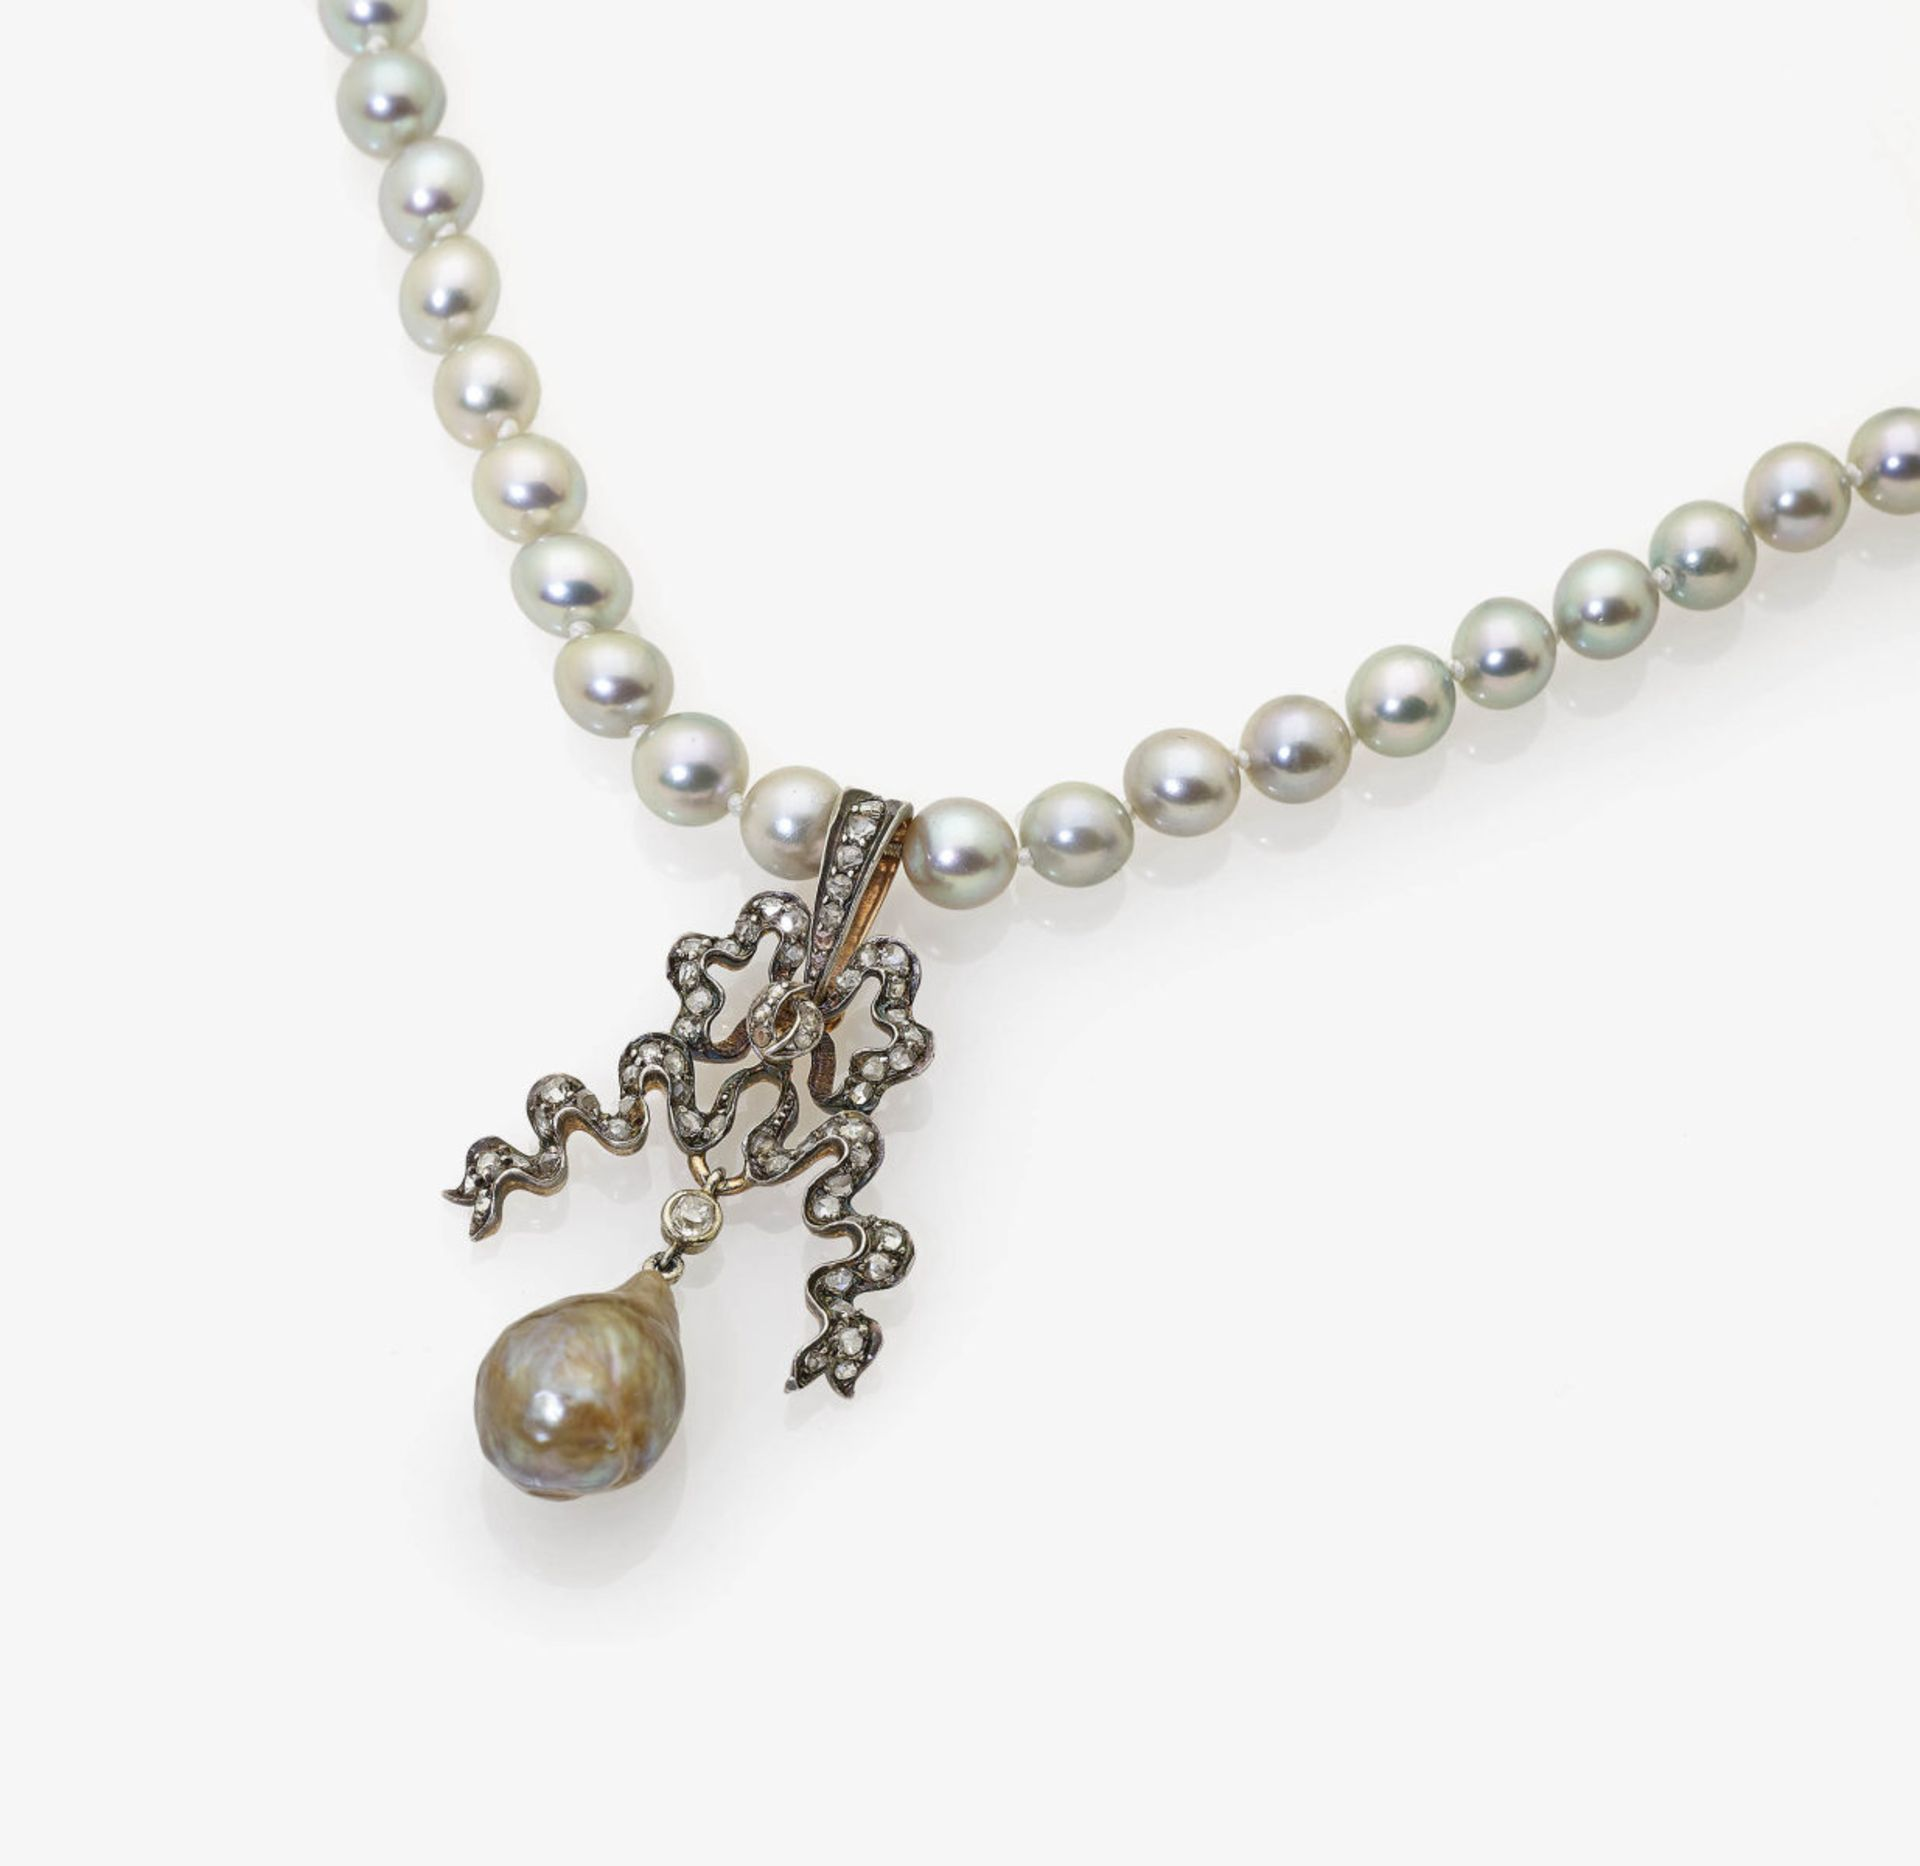 Los 1007 - A Cultured Pearl Necklace with Bow-Shaped Pendant